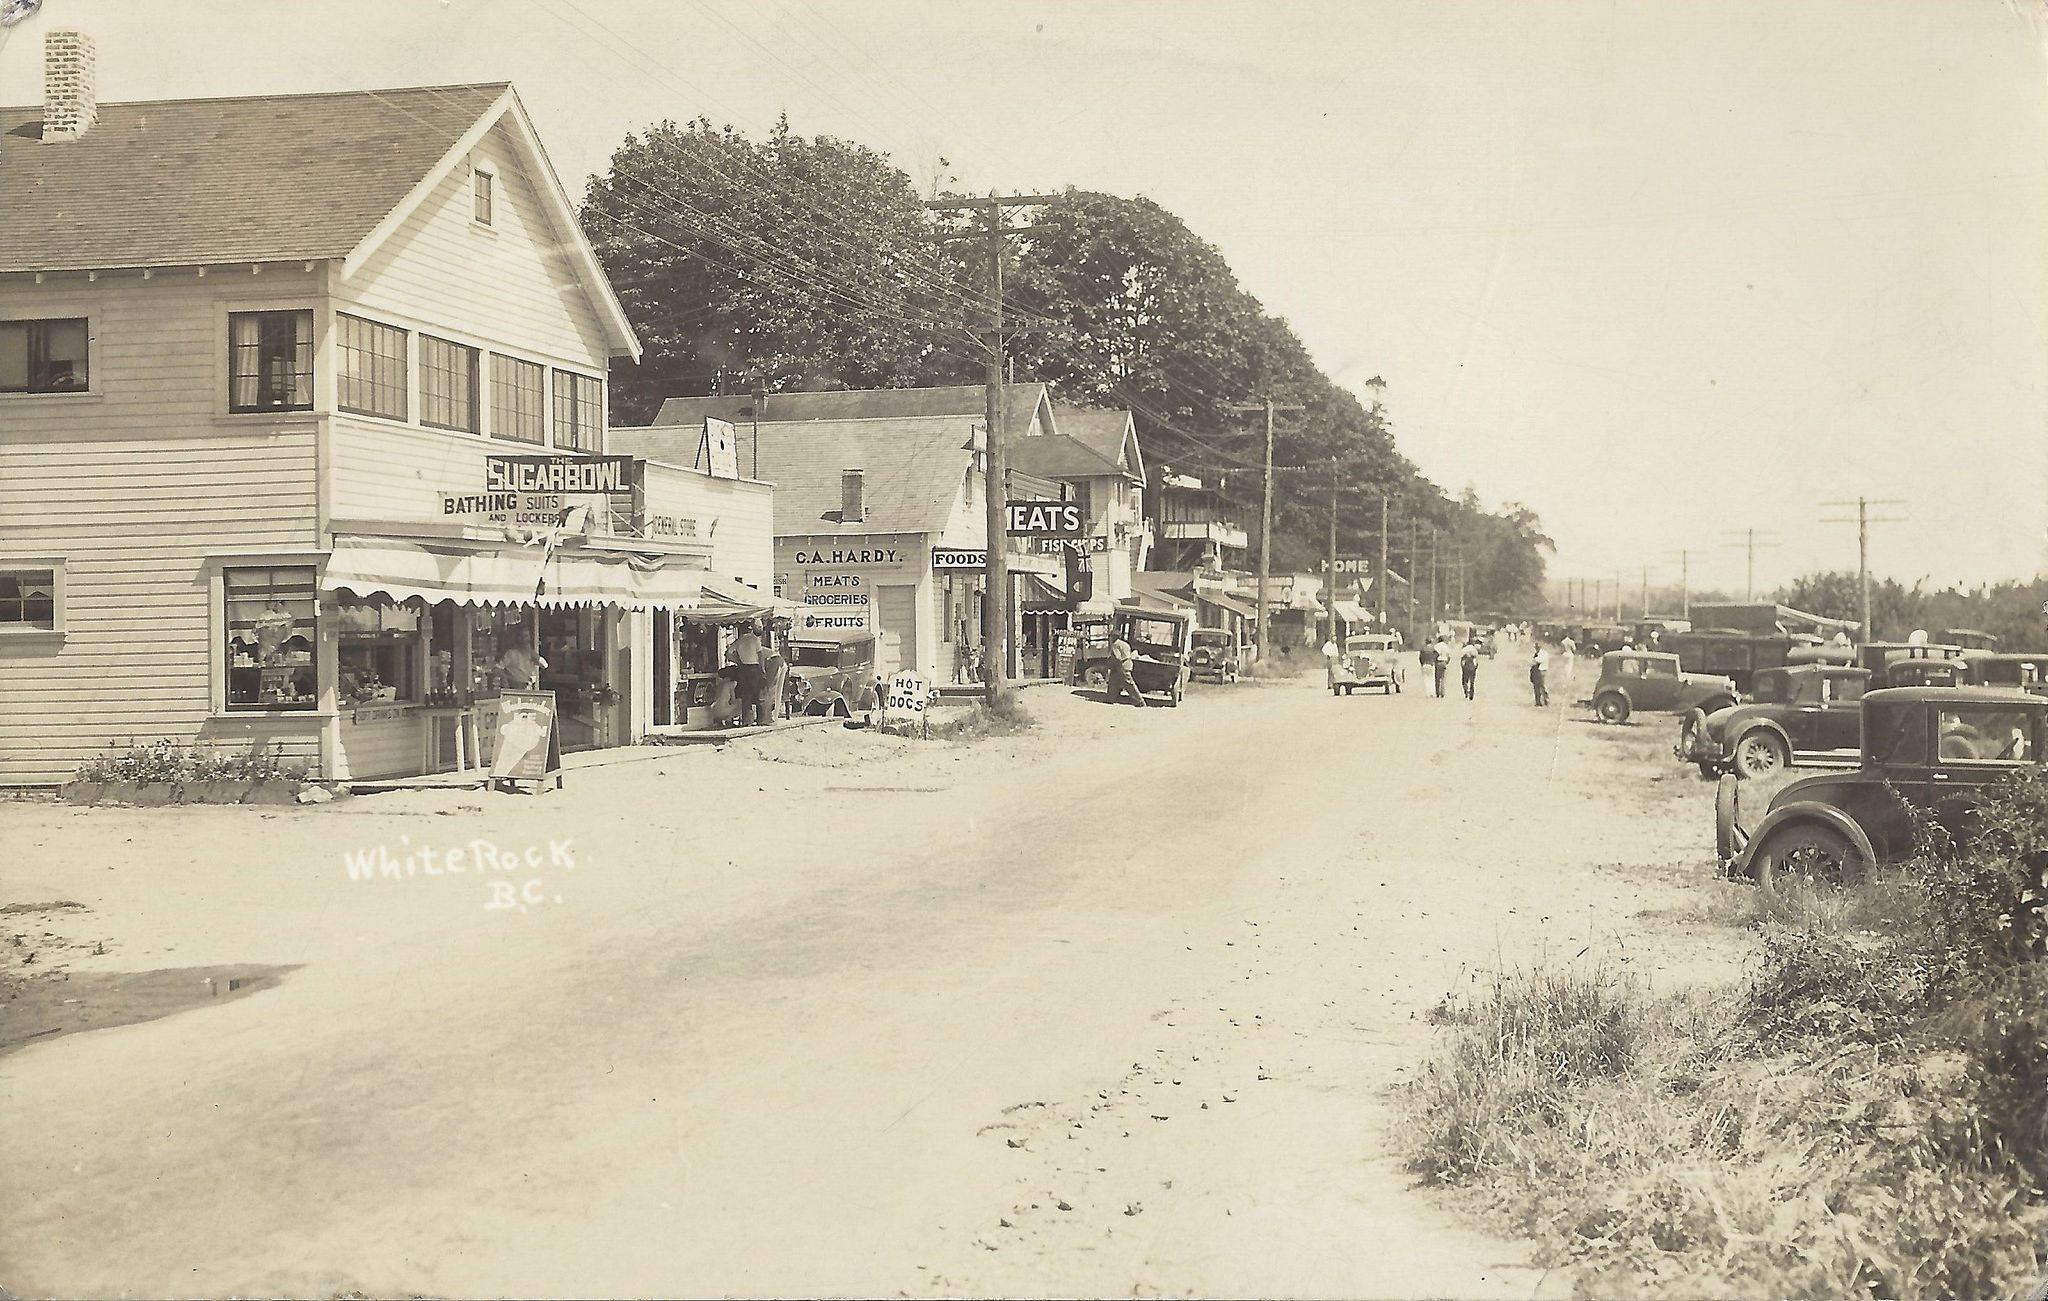 "https://flic.kr/p/Dq2px3 | c. 1935 Postcard - East End Businesses along the Waterfront / Washington Avenue at White Rock, B.C. | The first store on the left was called ""The SUGARBOWL"" looks like it was a general store selling various types of groceries and other items including  Bathing Suites and Lockers.    The next store was also a general store but I can't make out what the sign says.  Then it is C.A. HARDY MEATS / GROCERIES / FRUITS Store.  After that is a Fish & Chips Tak..."